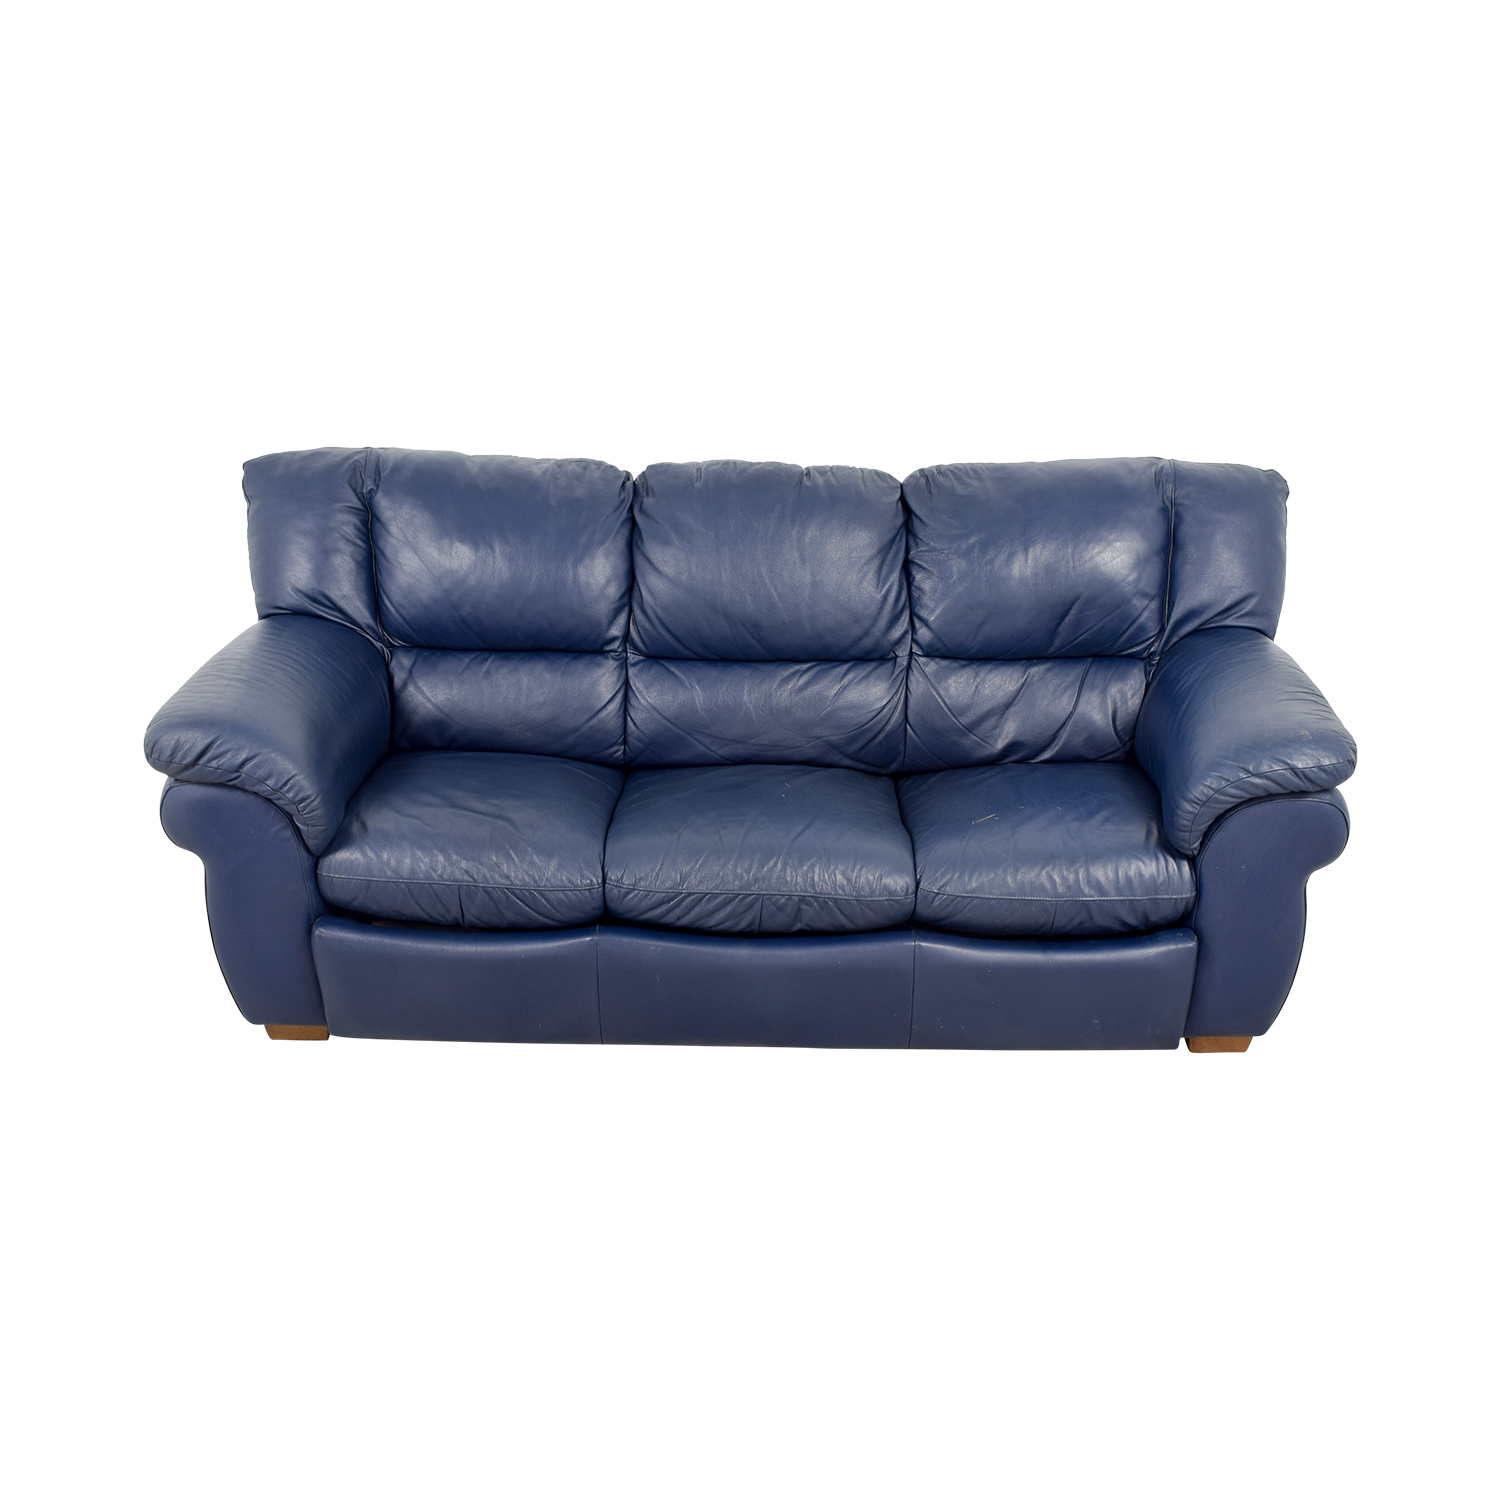 86% OFF - Macy\'s Macy\'s Navy Blue Leather Three-Cushion Sofa / Sofas